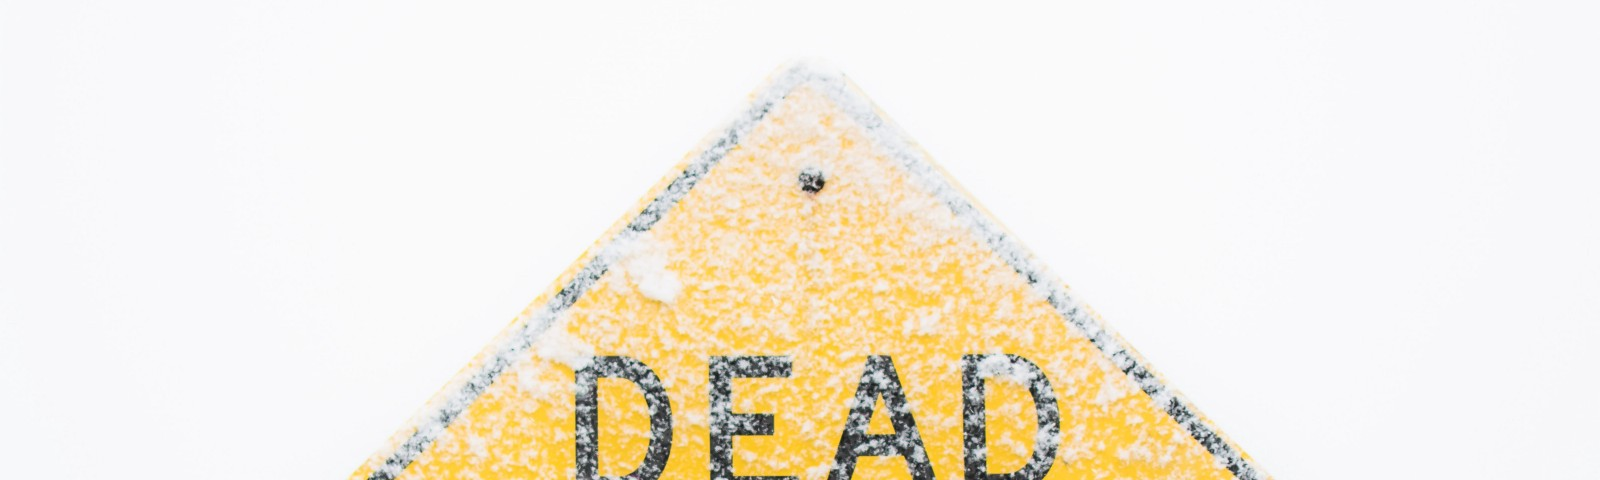 A dead end sign covered in snow.